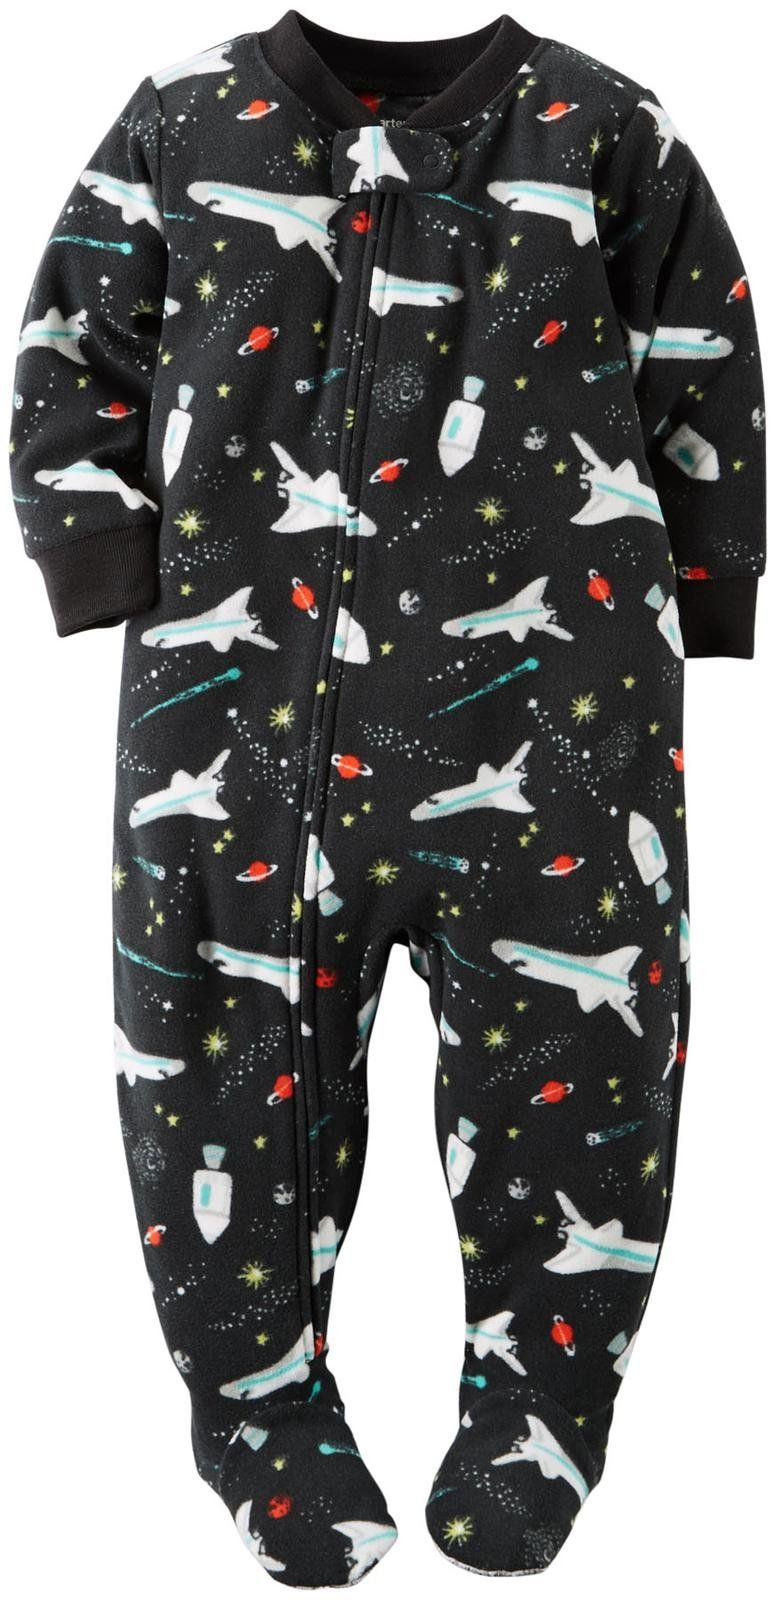 3a4b3e227 Carter's Footie (Baby) - Space | Style & Fashion (Children) #4 ...